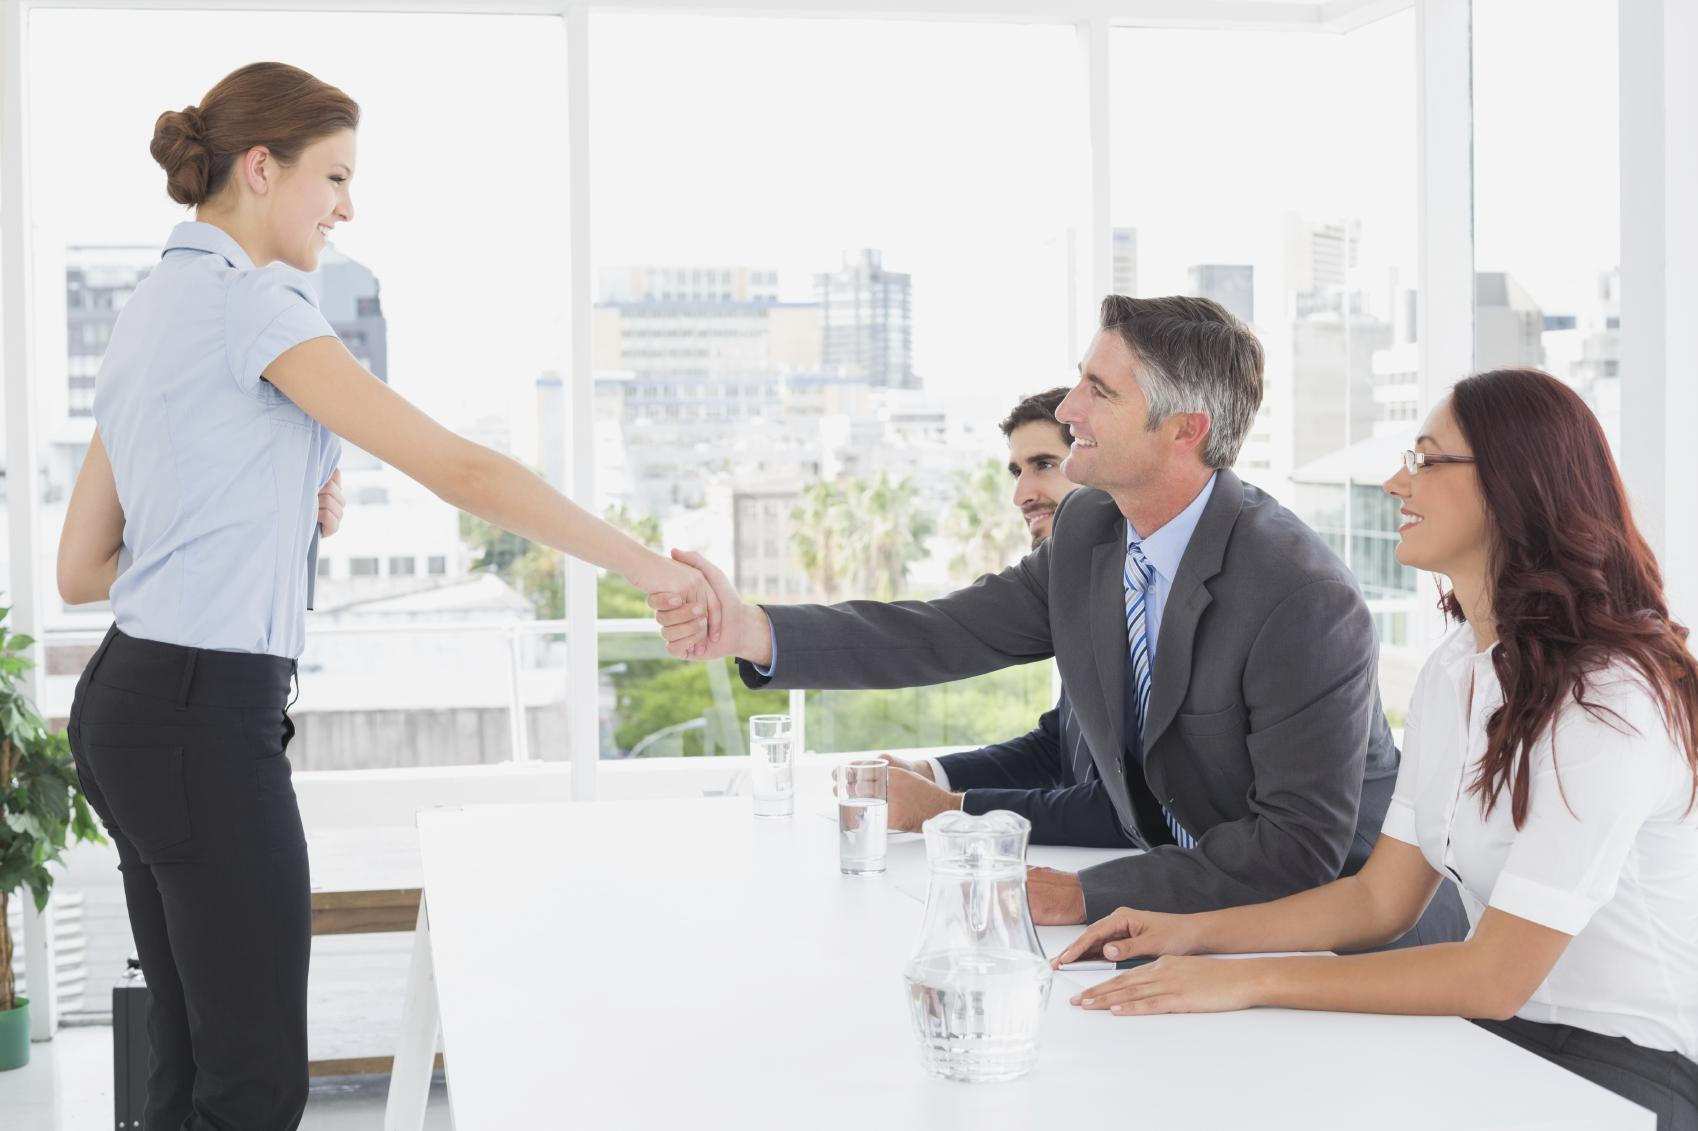 The Hiring Process: When To Initiate A Background Check